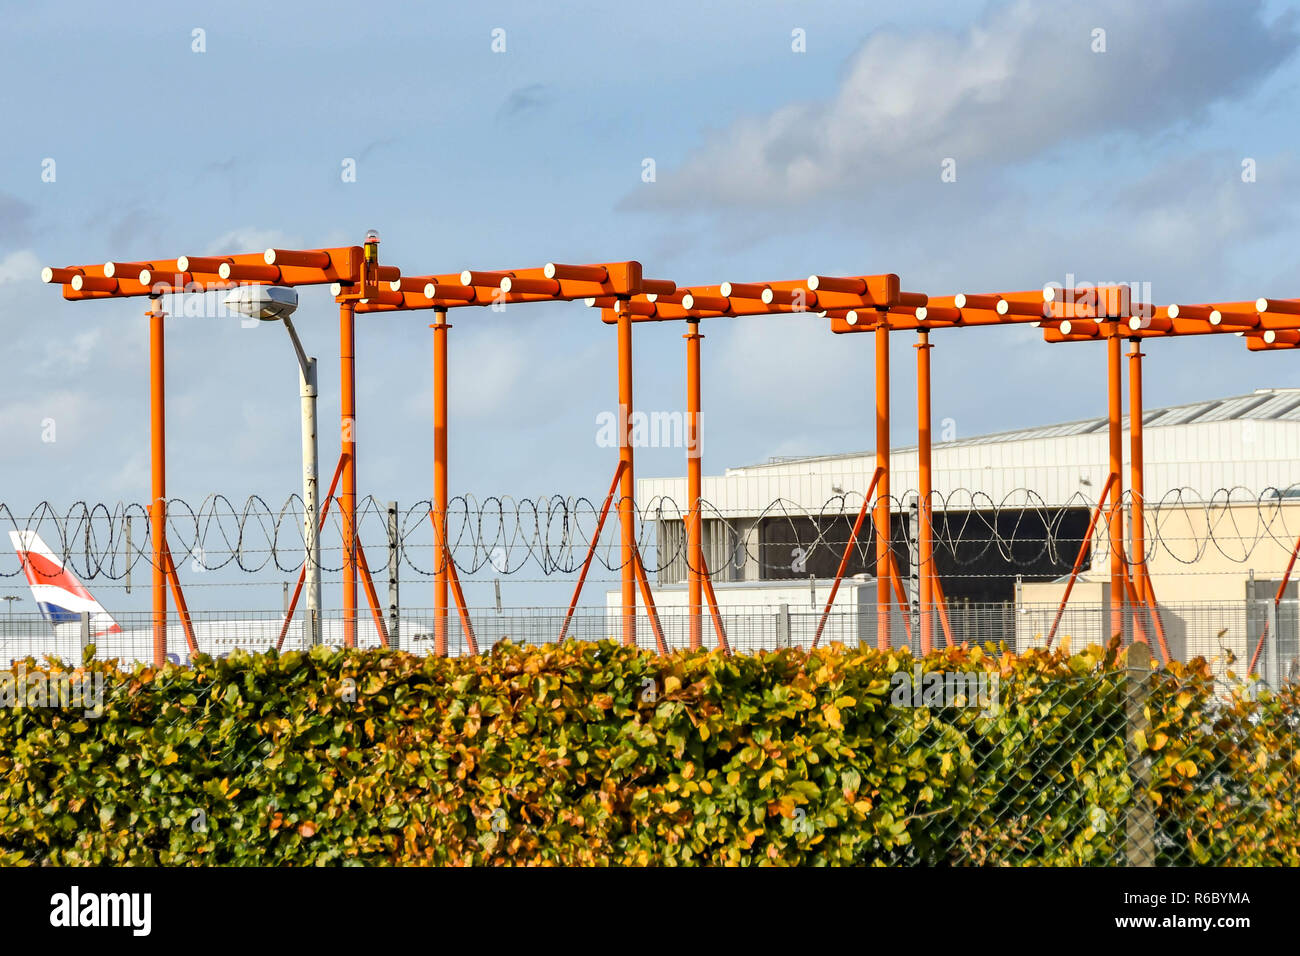 LONDON, ENGLAND - NOVEMBER 2018: Antennae for the instrument landing system (ILS) at London Heathrow Airport. - Stock Image